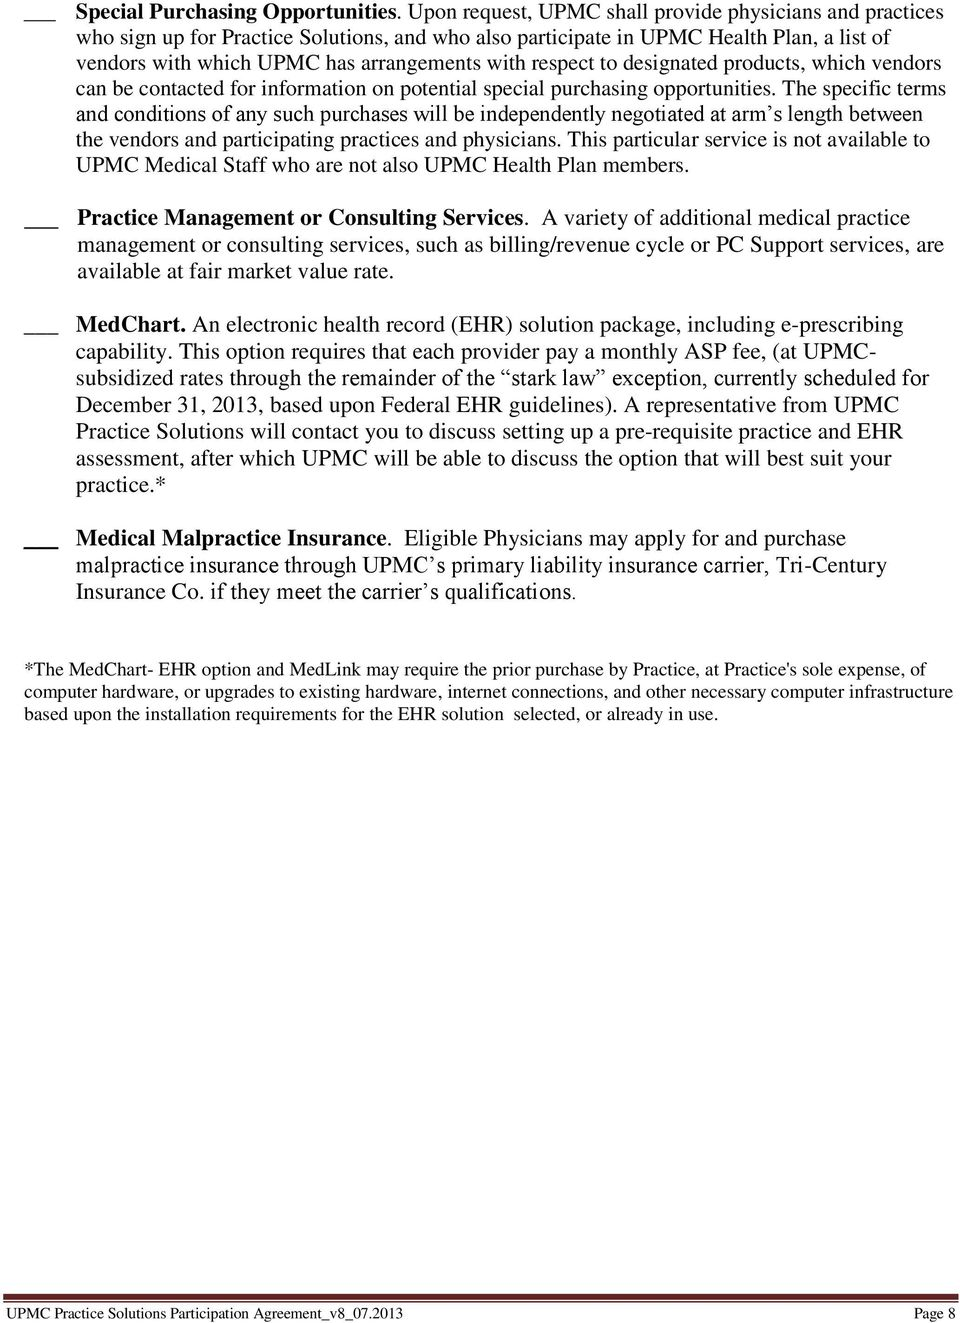 Upmc Practice Solutions Participation Agreement Pdf